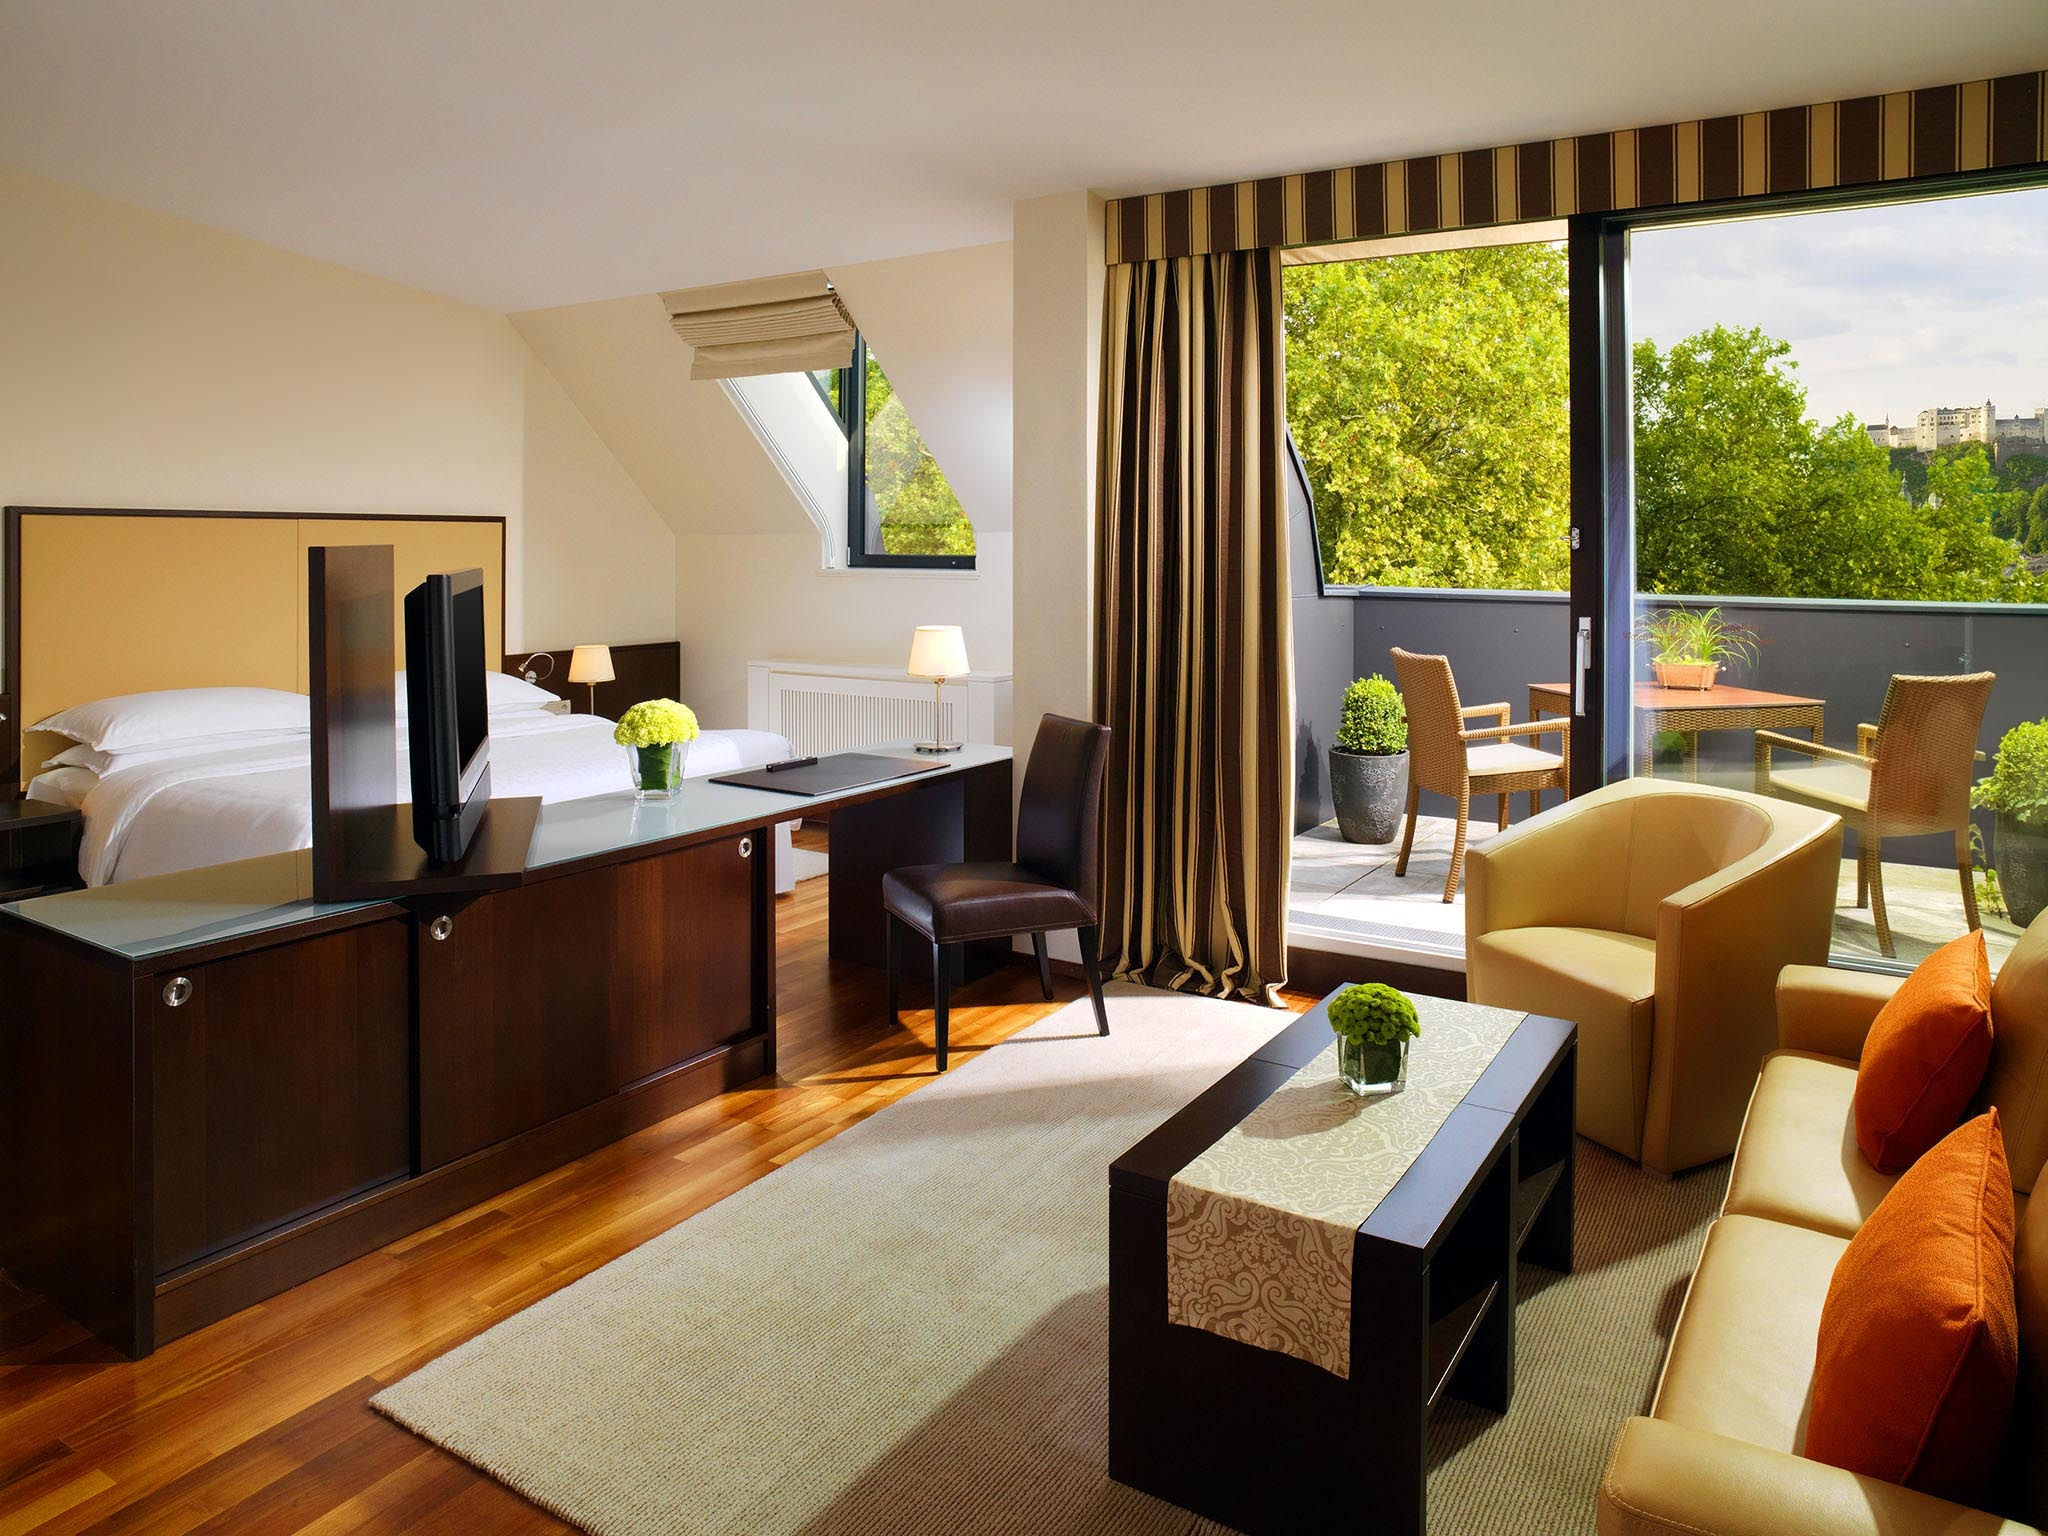 Sky Suites at the Sheraton Hotel Salzburg